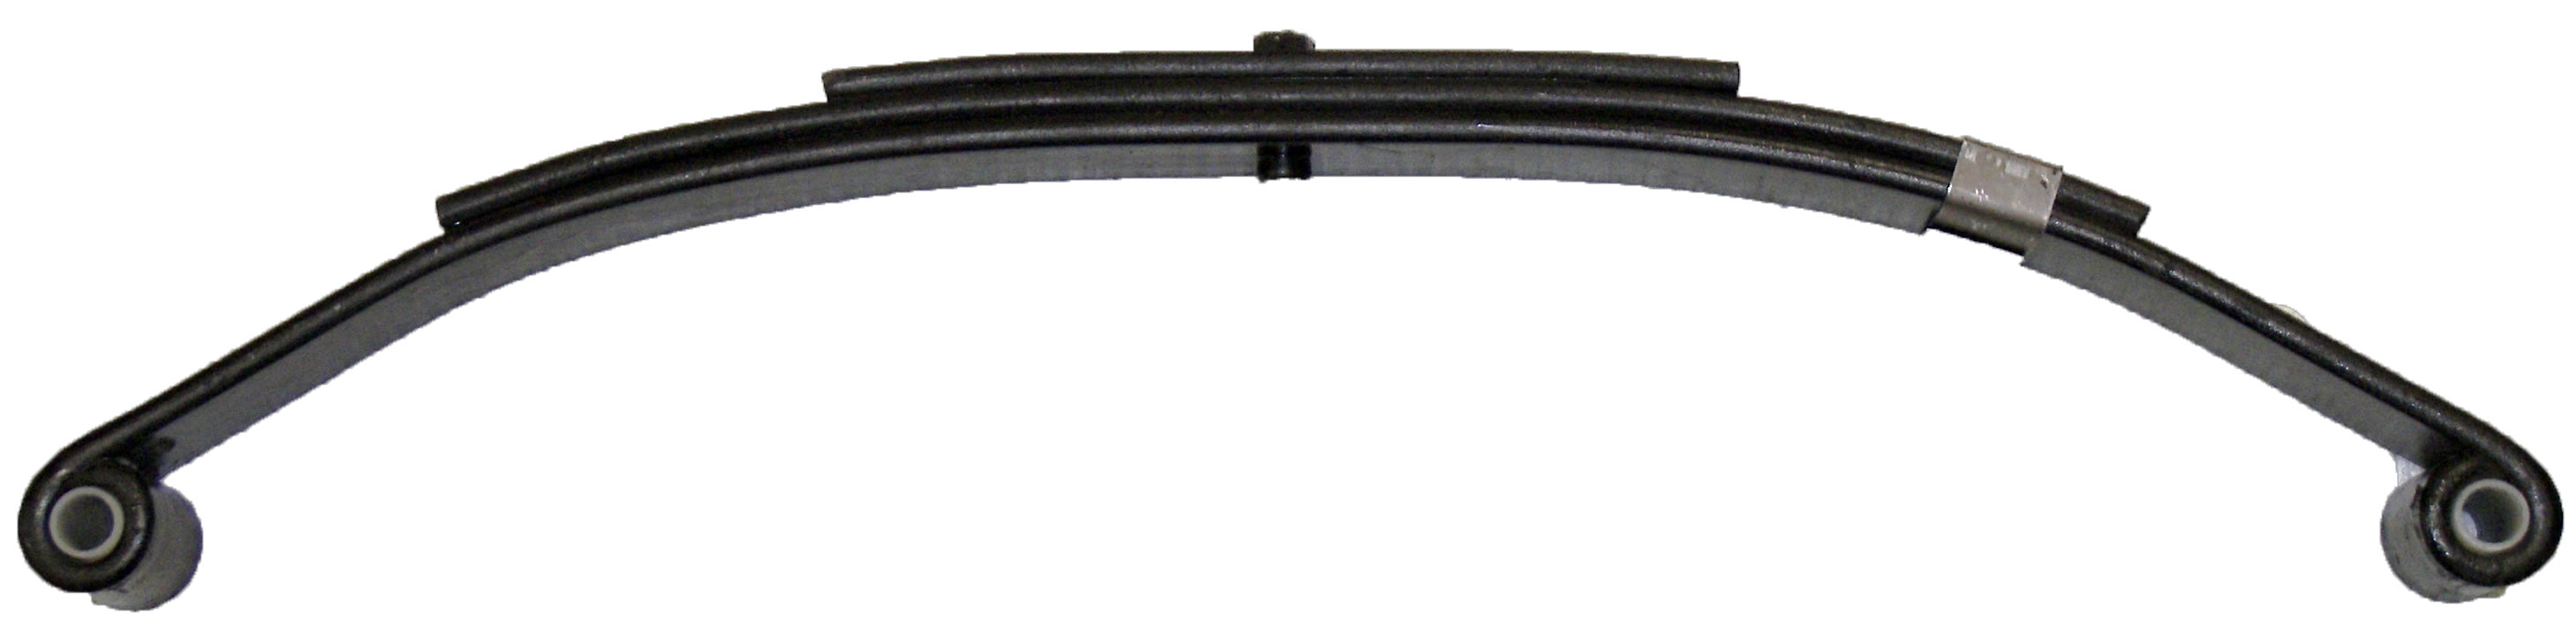 014-127103 AP Products Leaf Spring 2-1/2 Inch Height